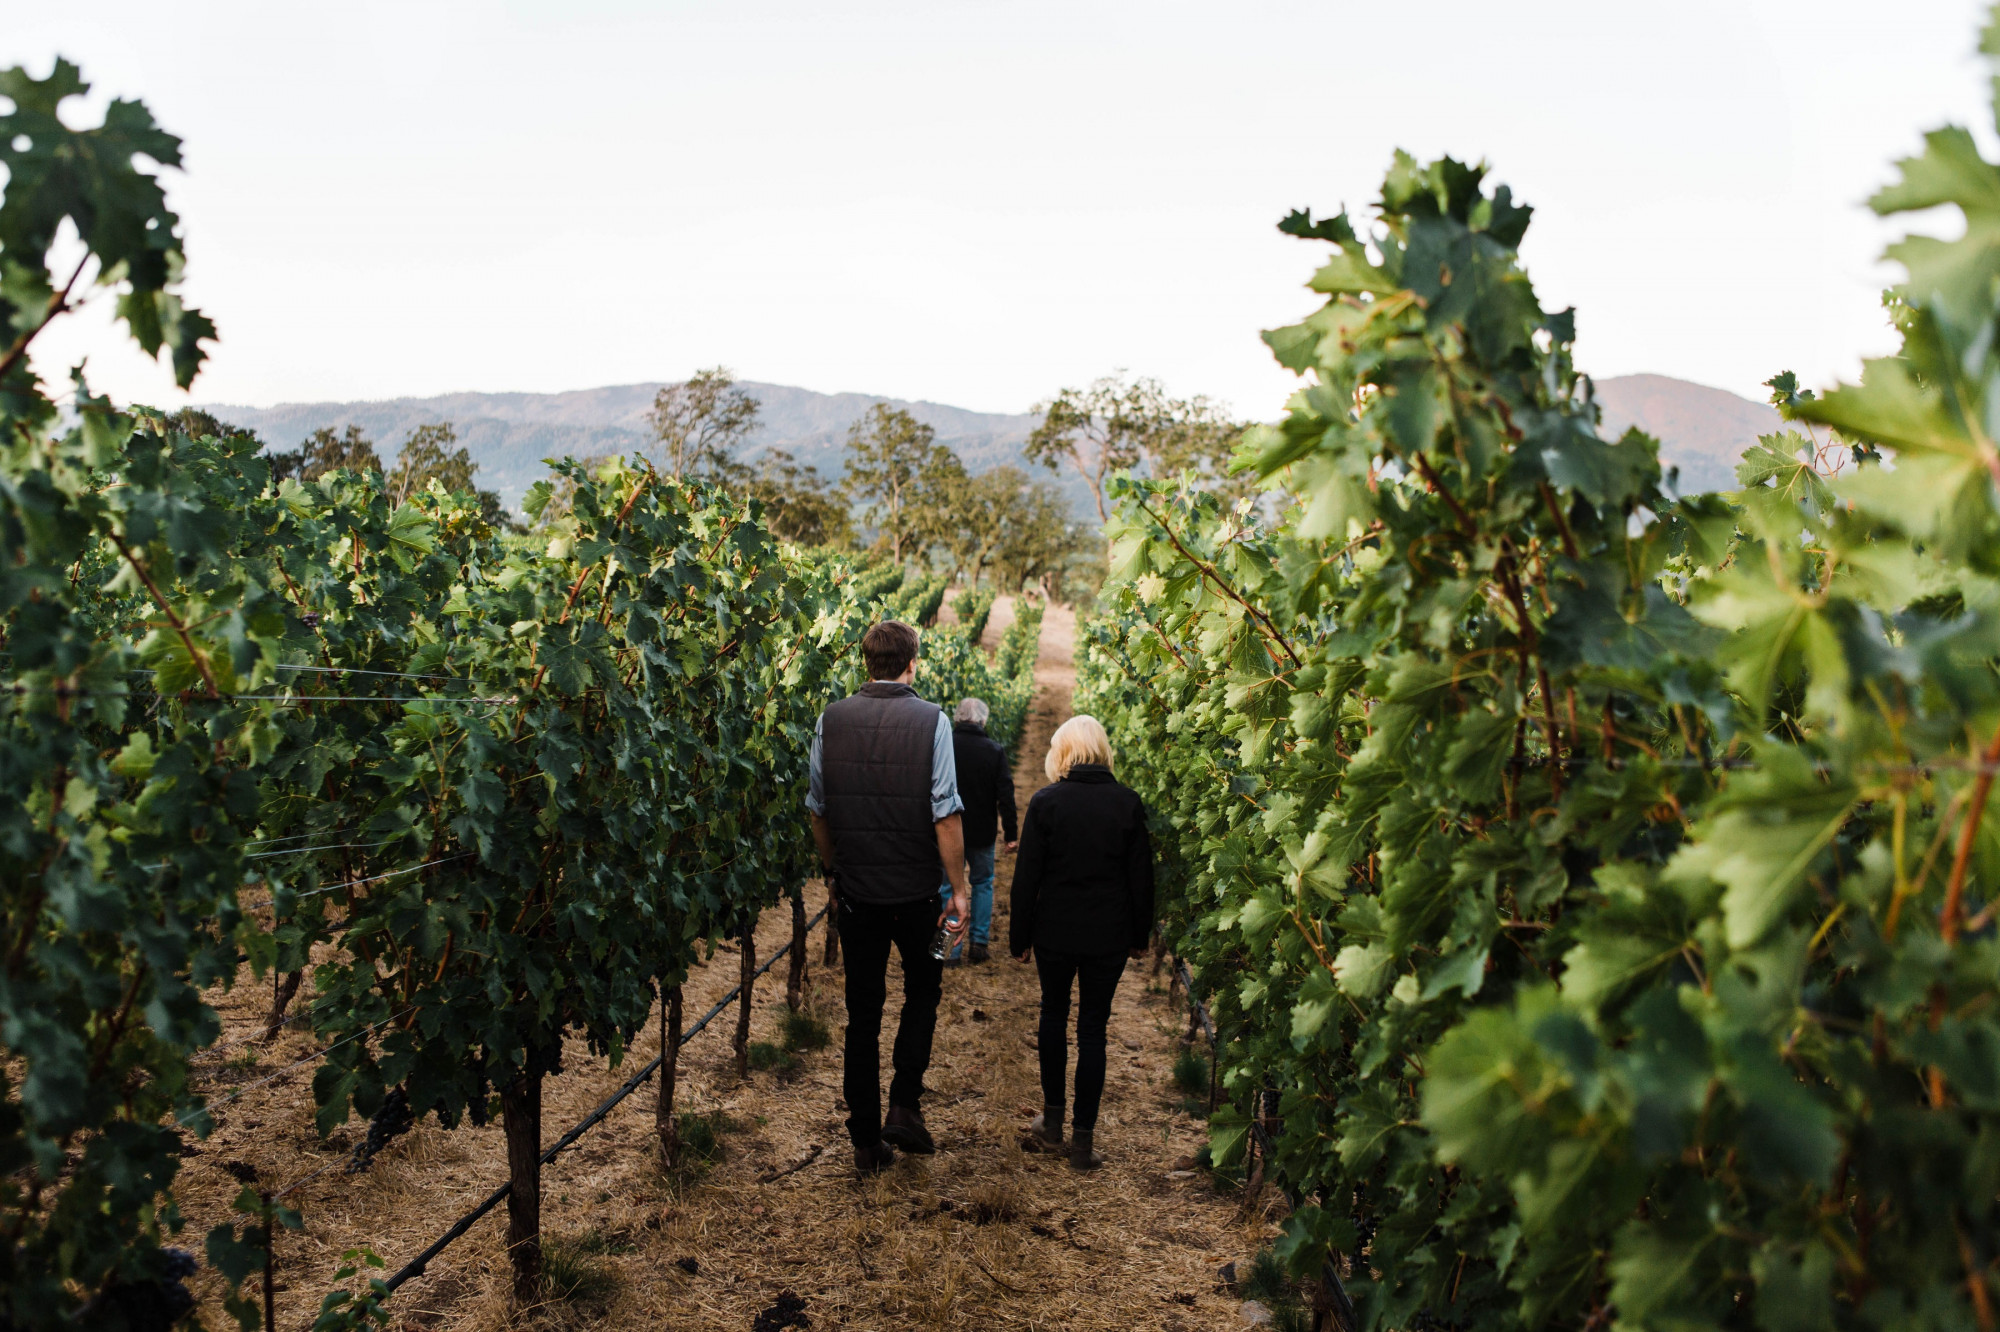 Vineyard walk with Daphne and Bart. Photo by Sarah Anne Risk